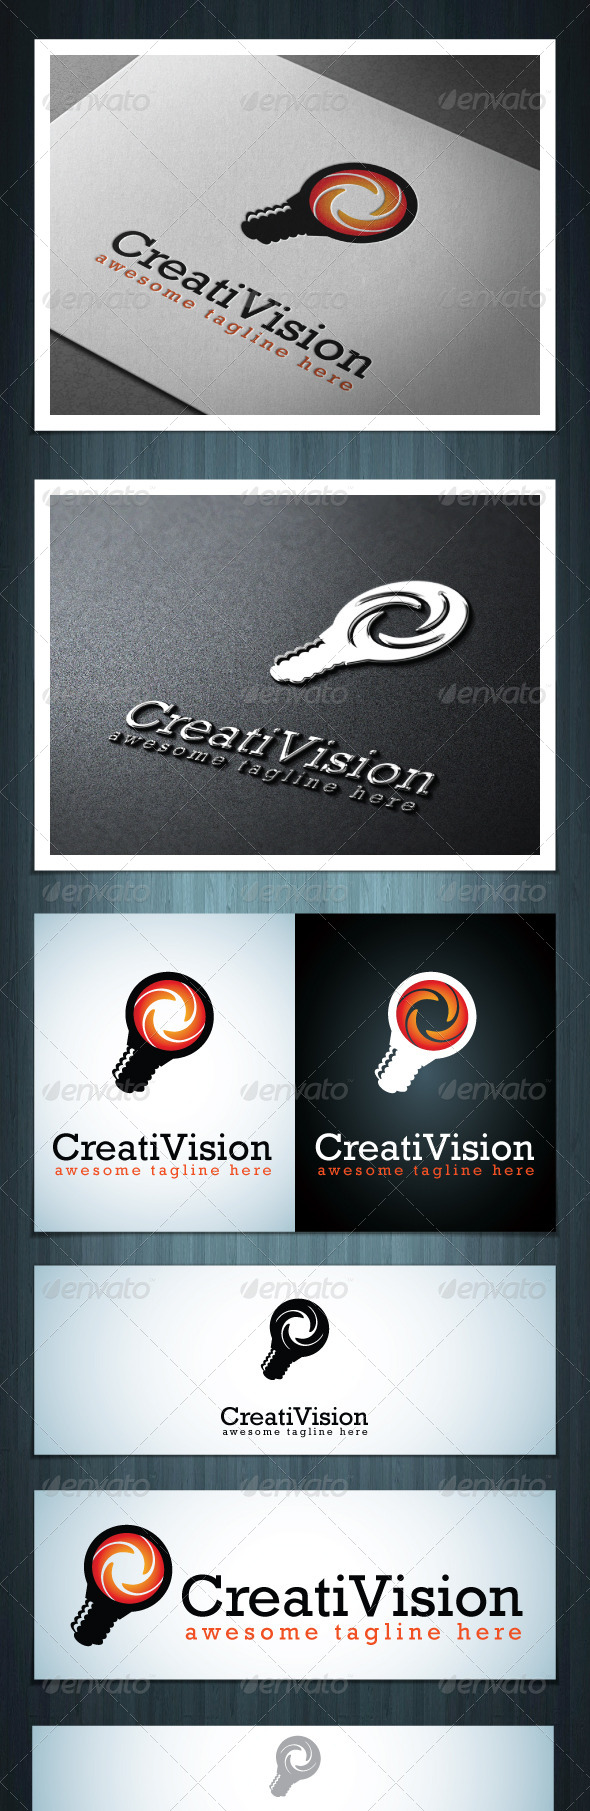 GraphicRiver Creativision 5123661